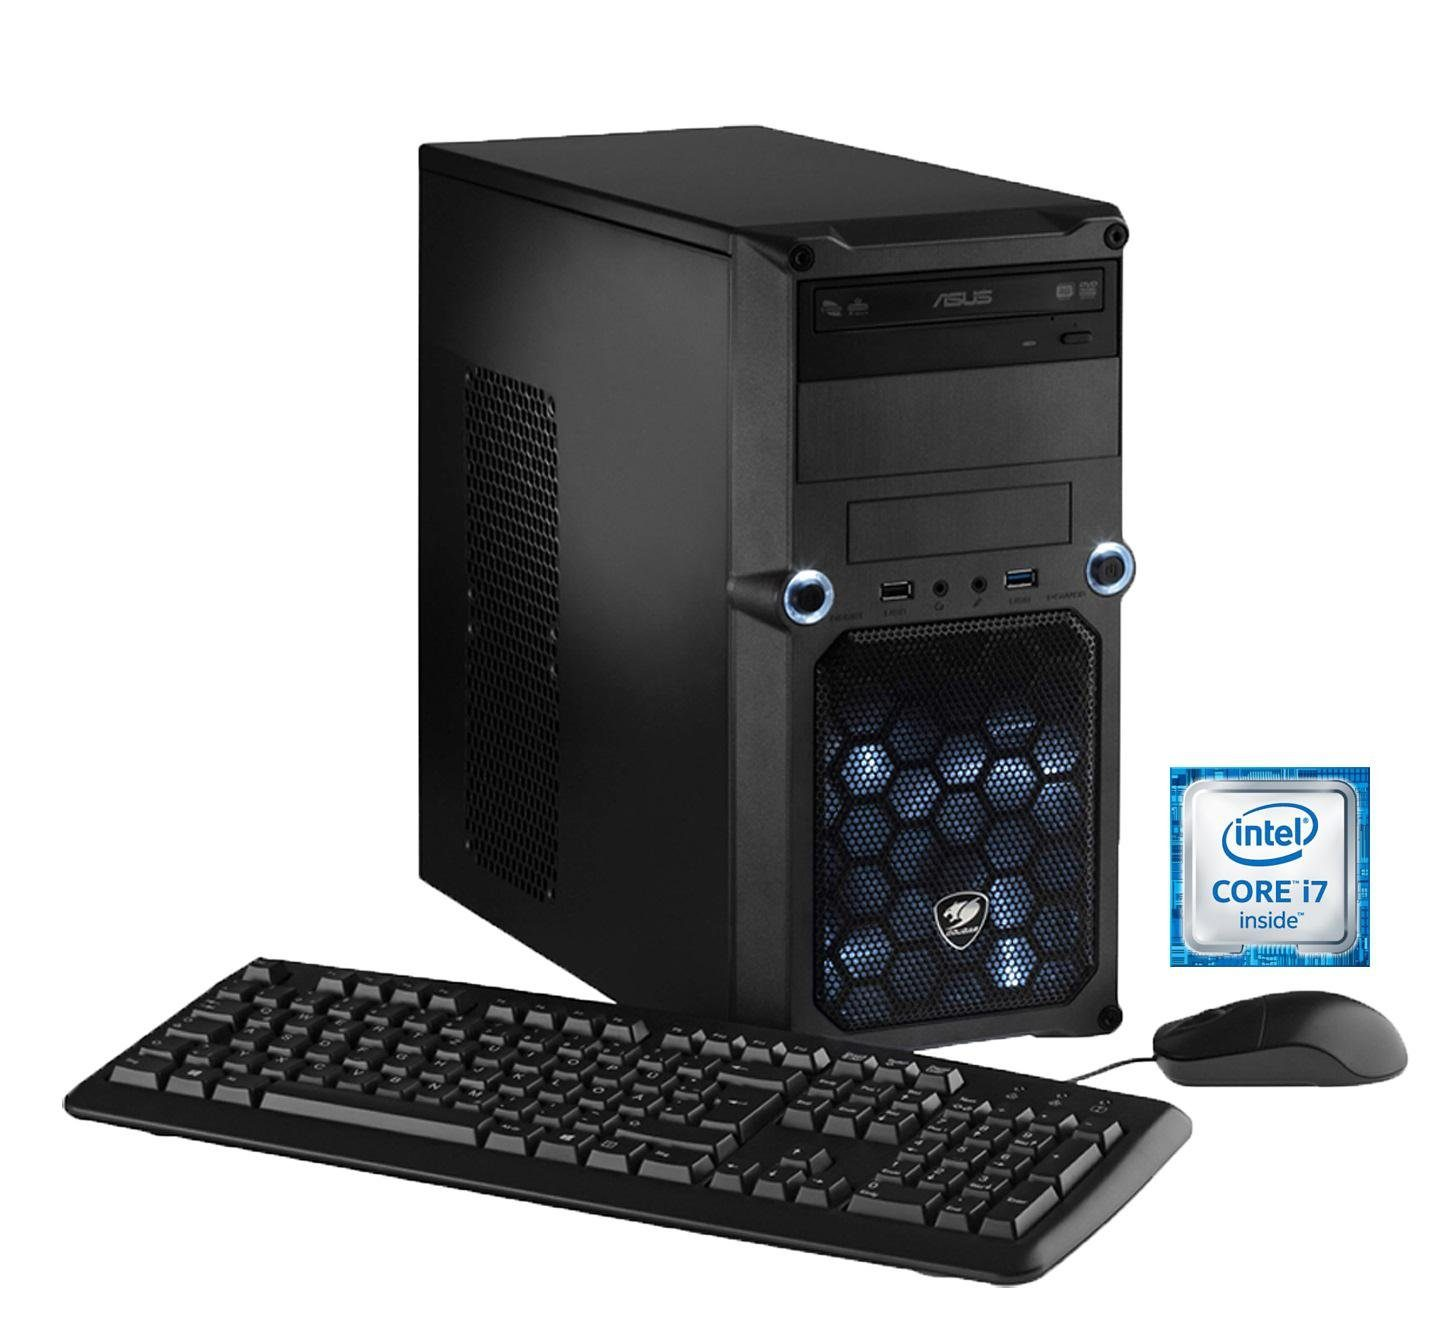 Hyrican Gaming PC Intel® i7-6700, 8GB, 1TB, GeForce® GTX 970 »CyberGamer 4917«